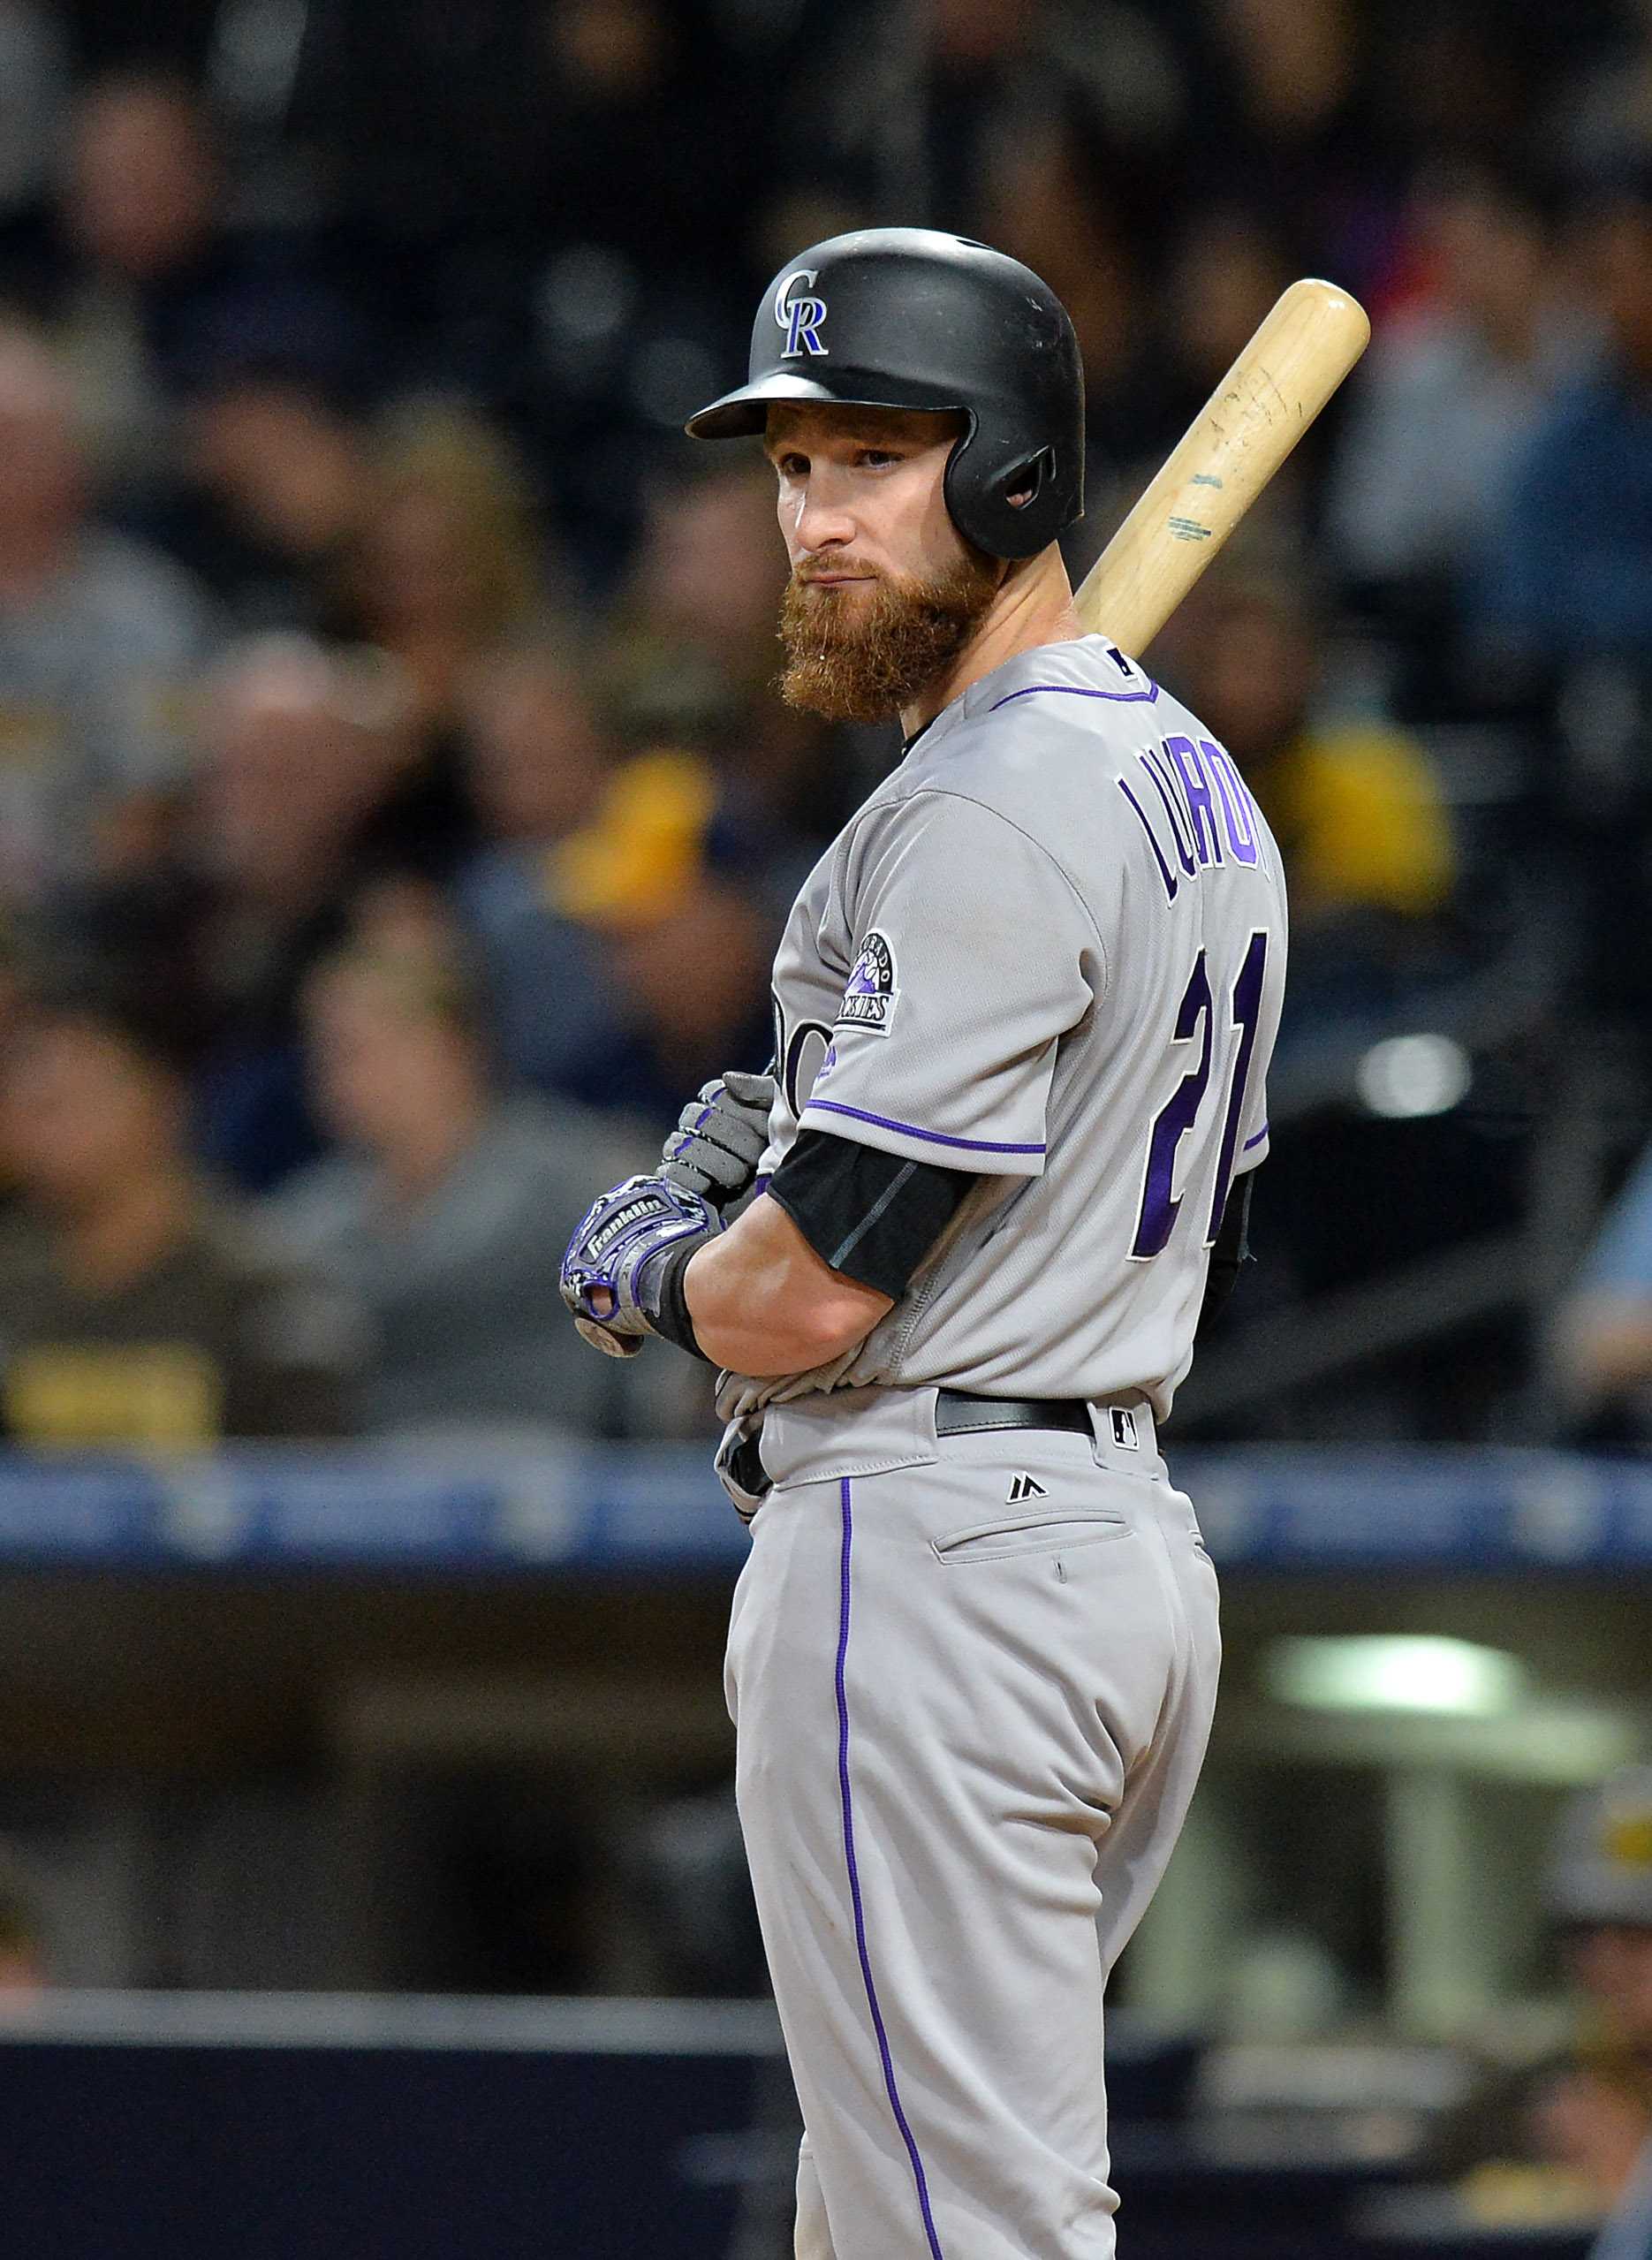 89bd736eba0 Sep 22, 2017; San Diego, CA, USA; Colorado Rockies catcher Jonathan